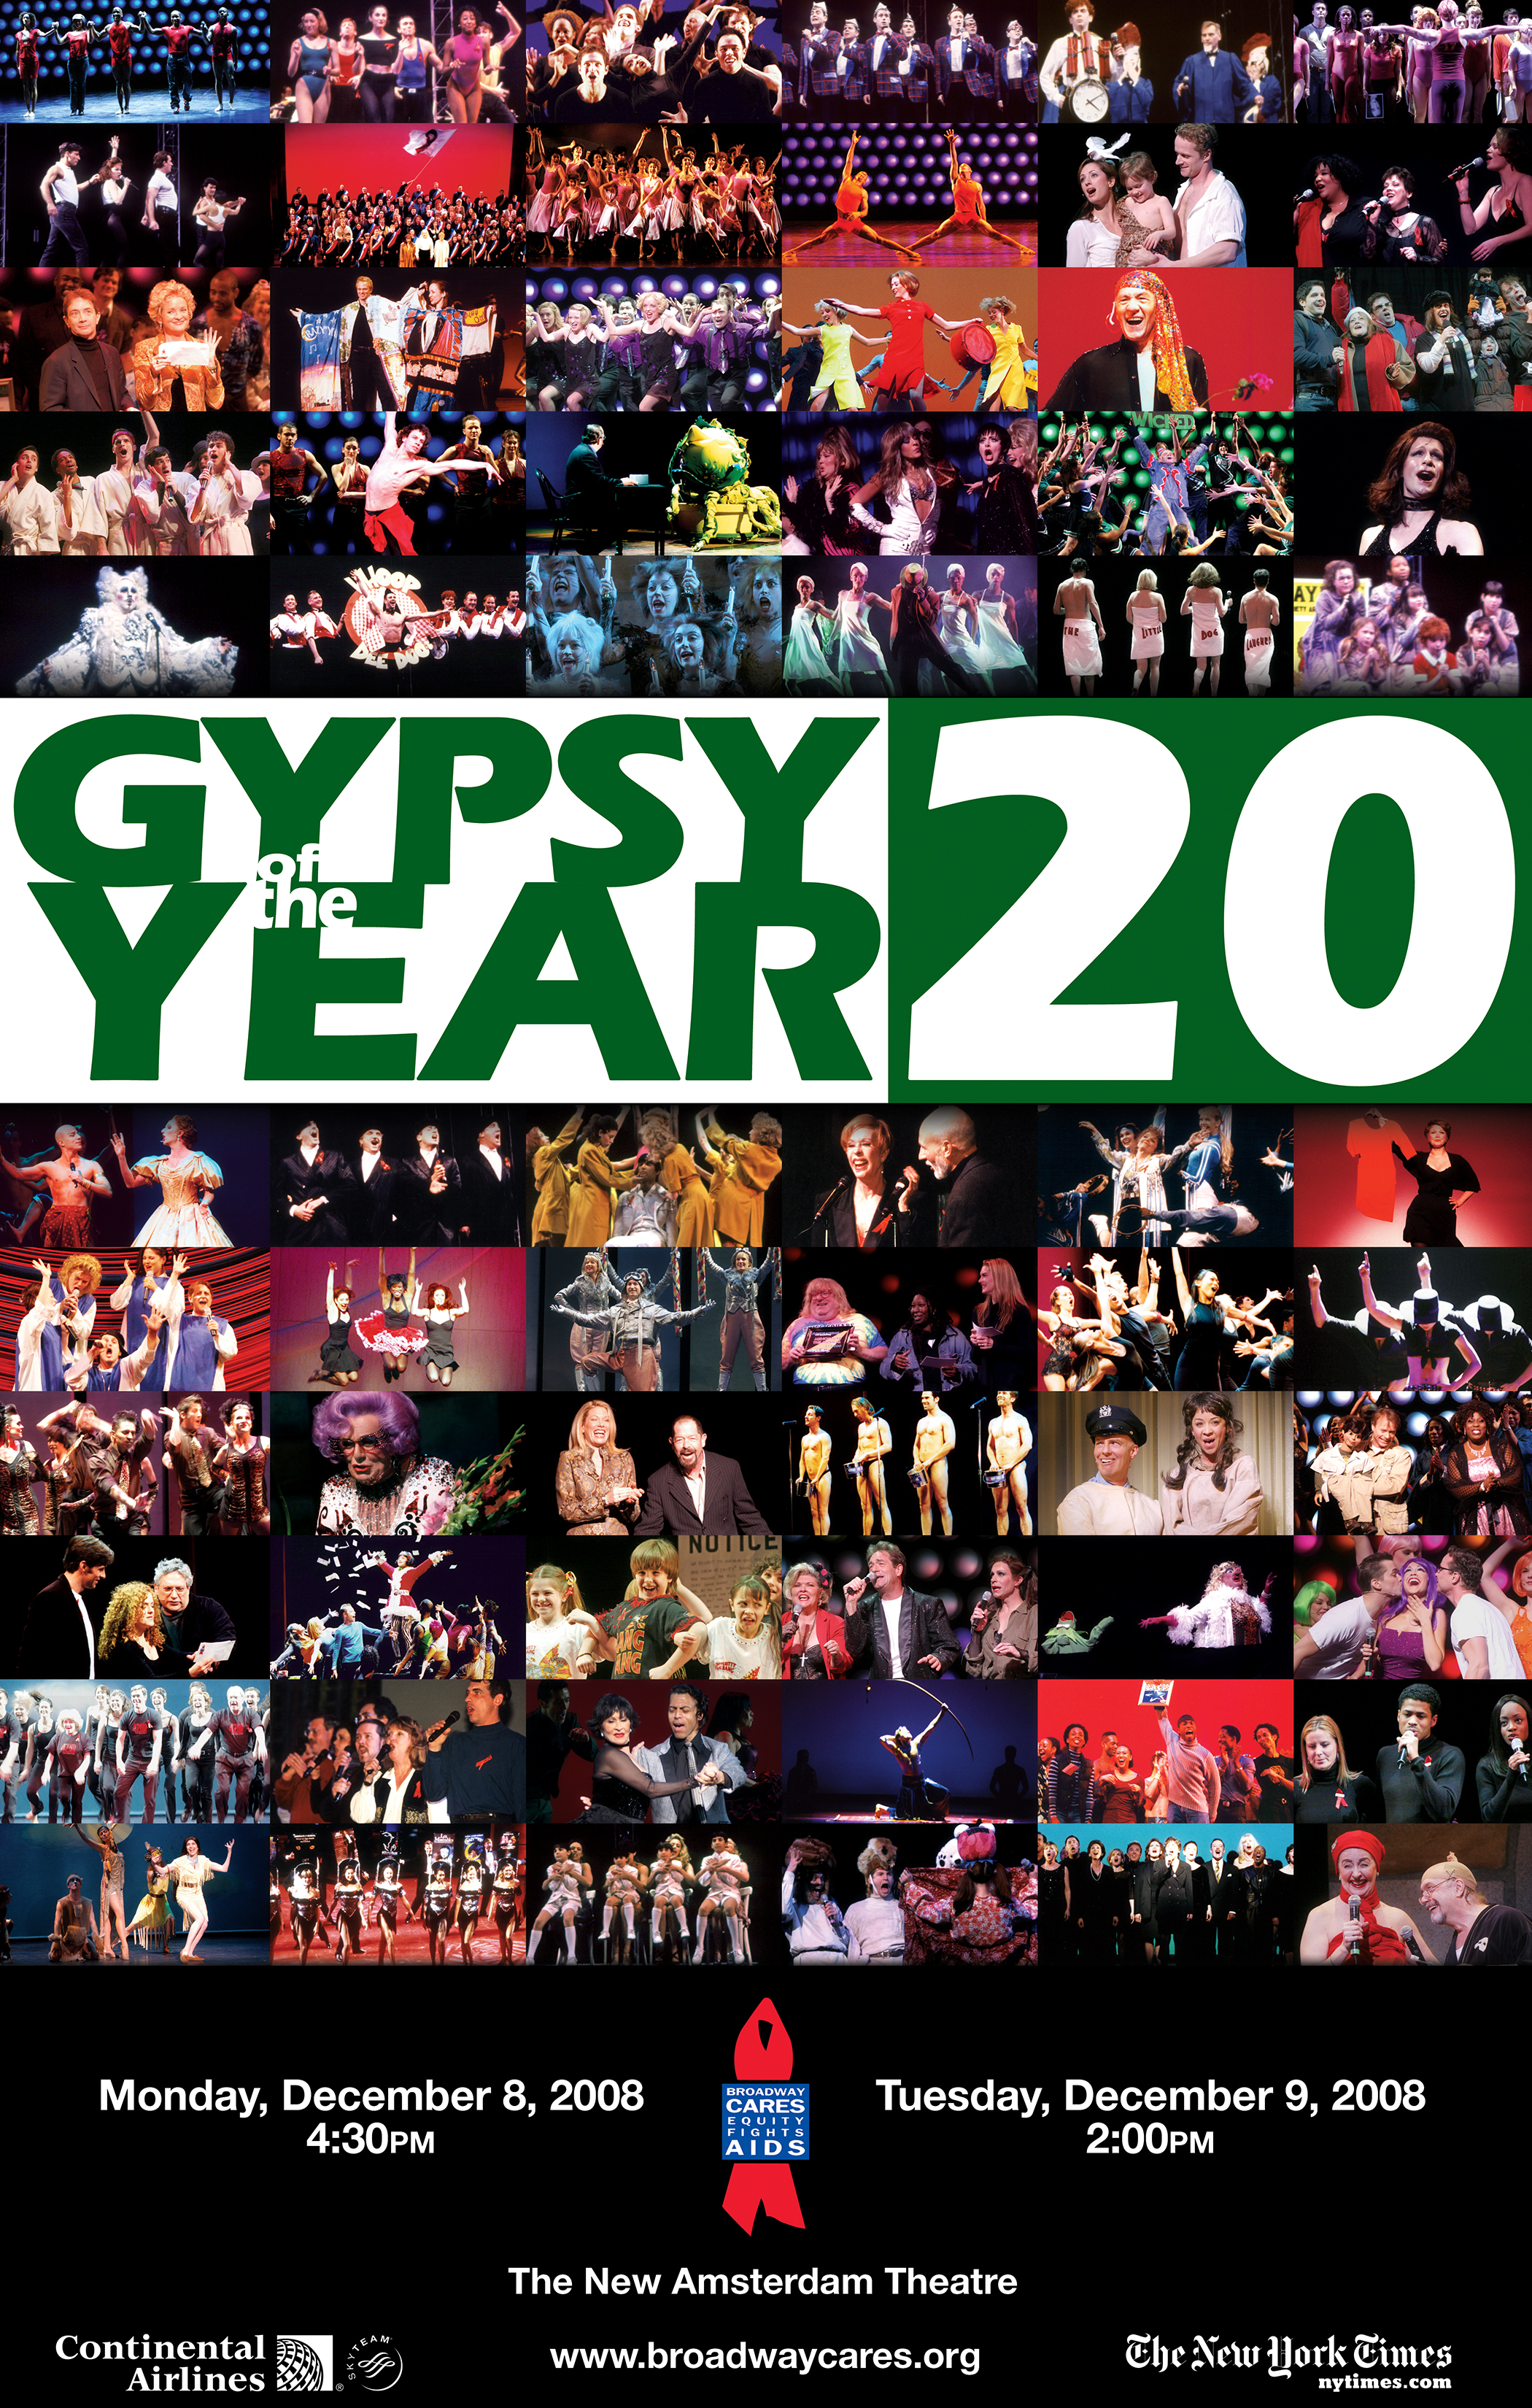 Gypsy of the Year 20 Poster